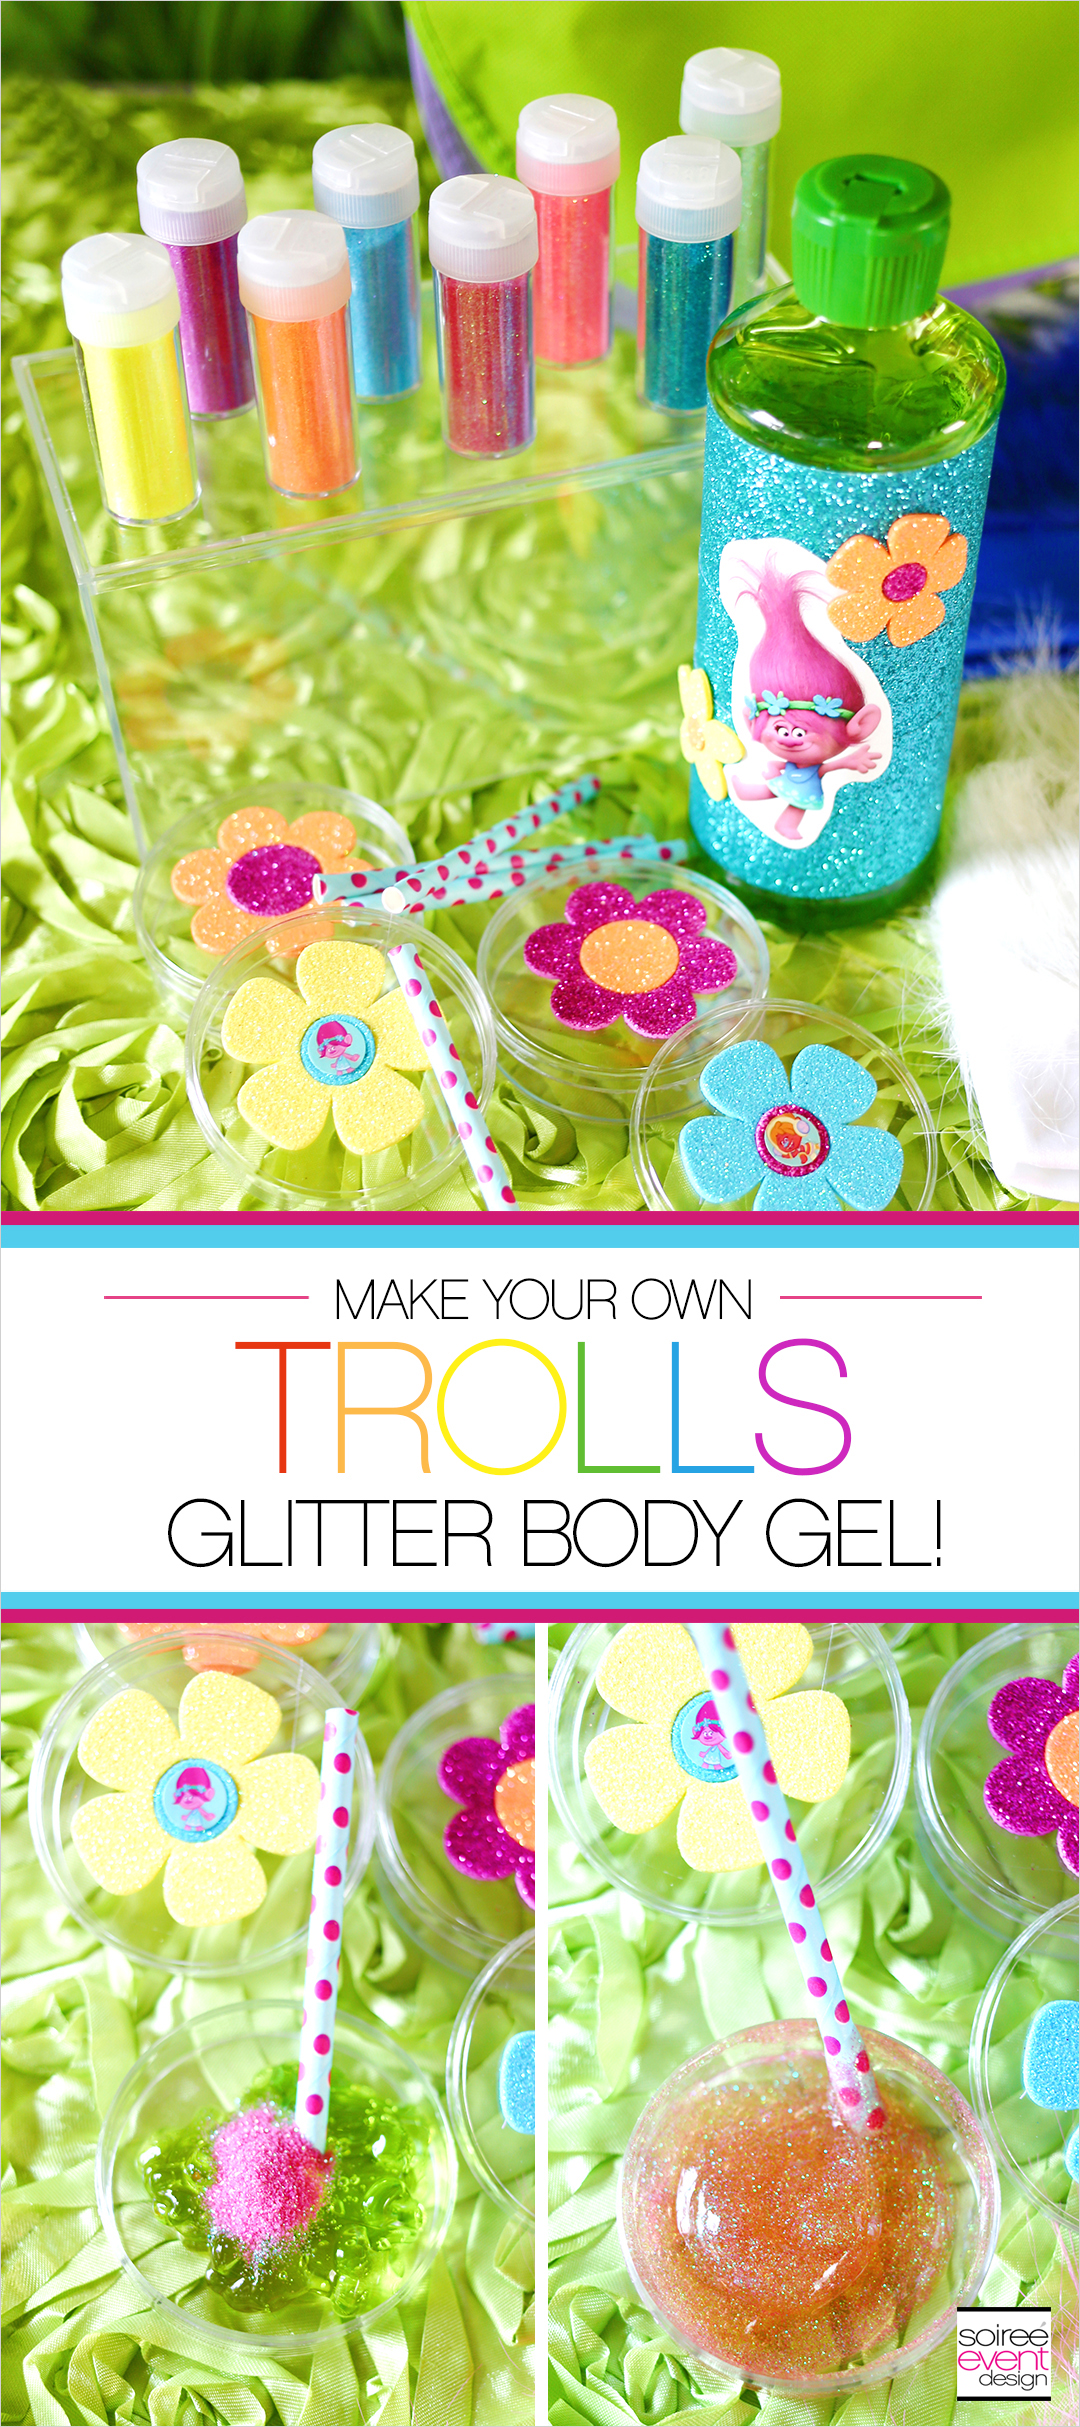 Trolls Party Ideas - DIY Trolls Glitter Body Gel